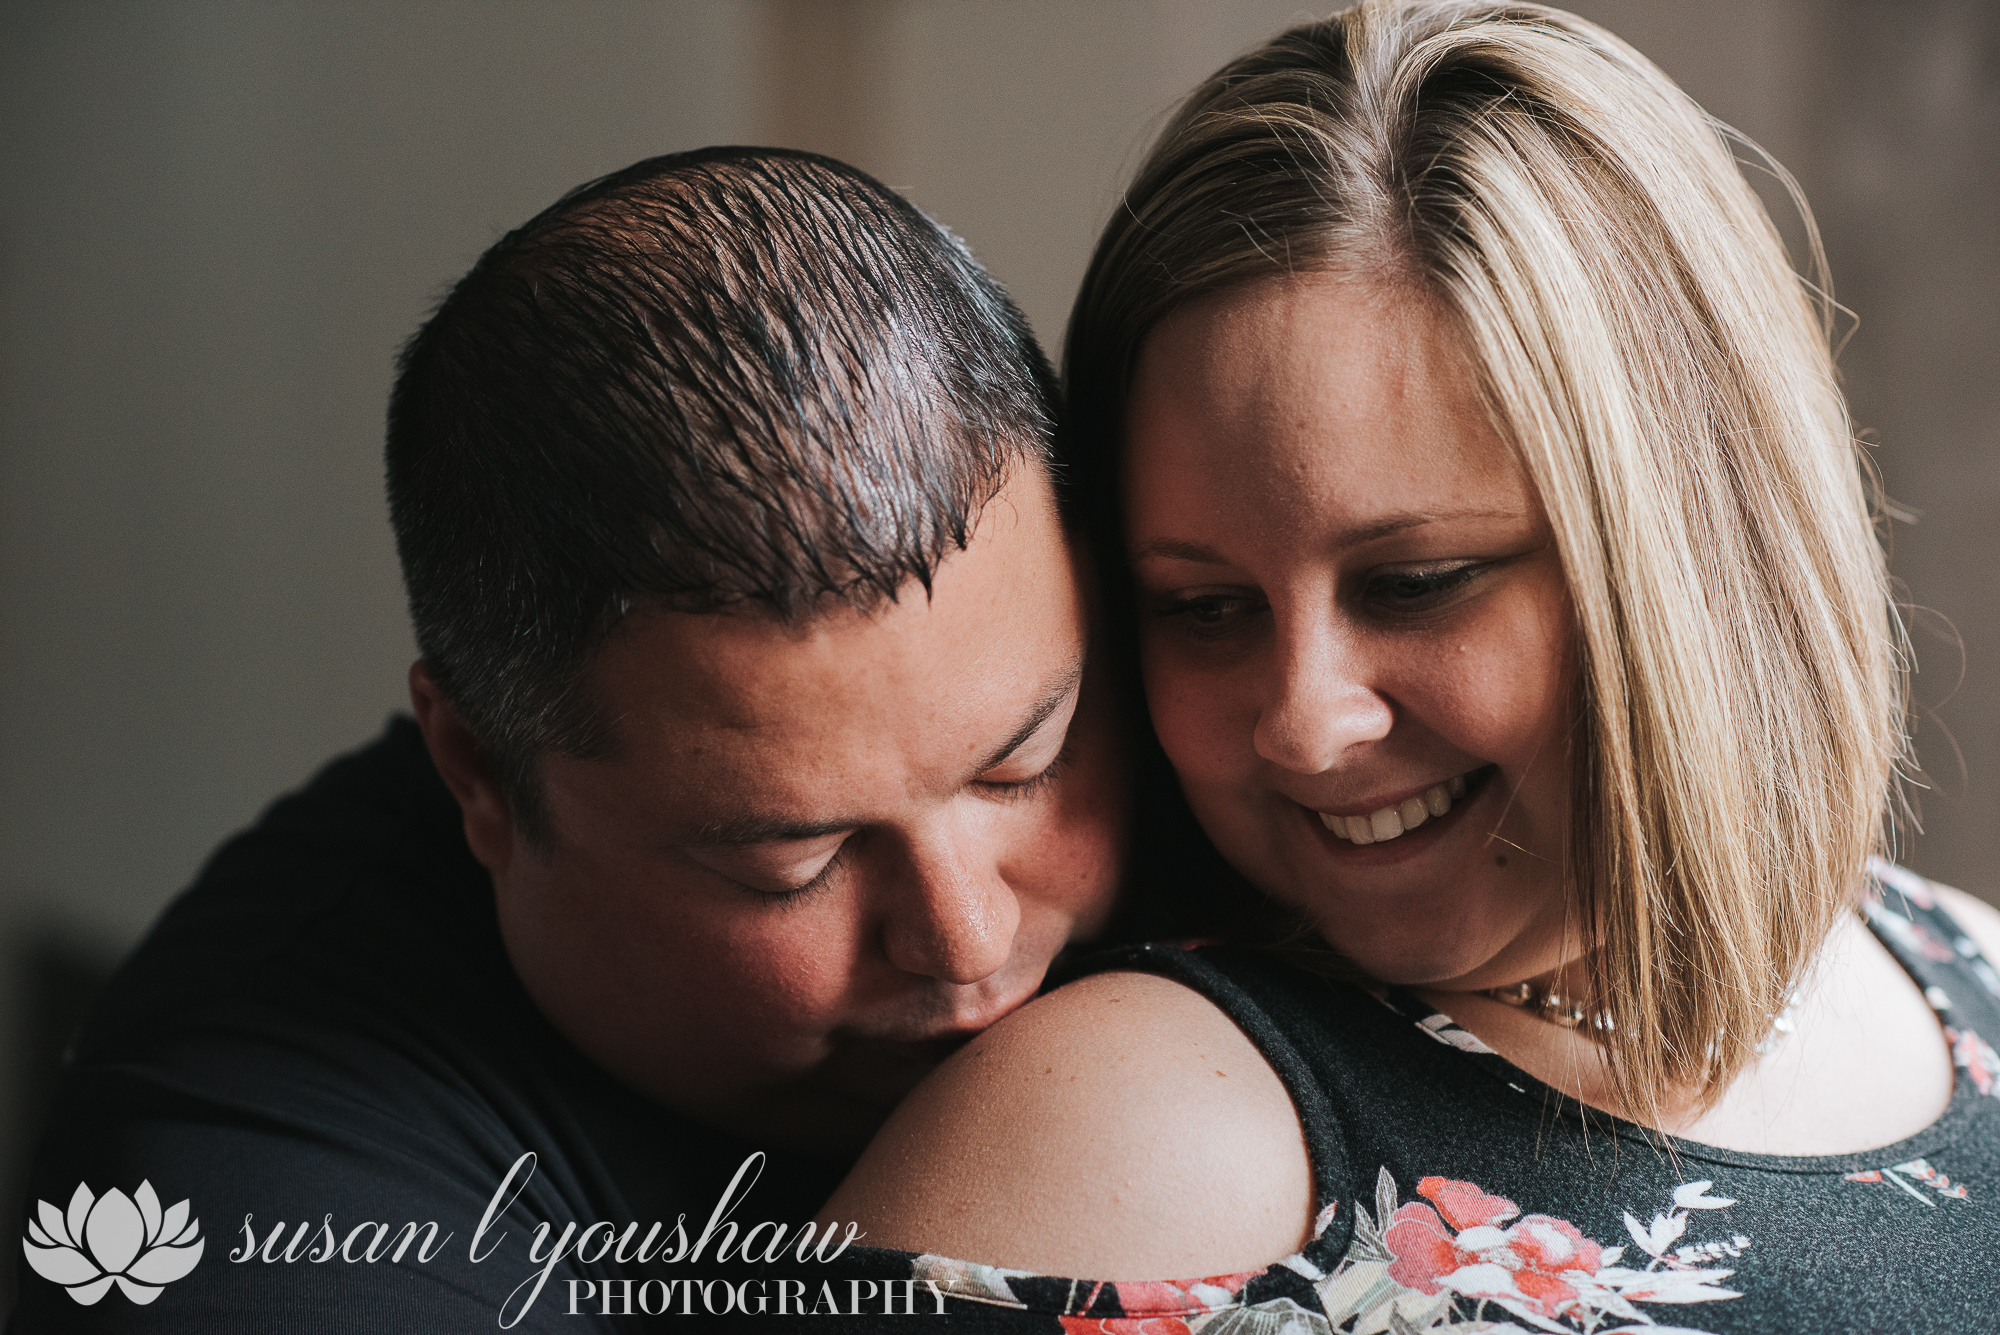 BLOG Love Mini Sessions 06-28-2018 SLY Photography LLC-6.jpg